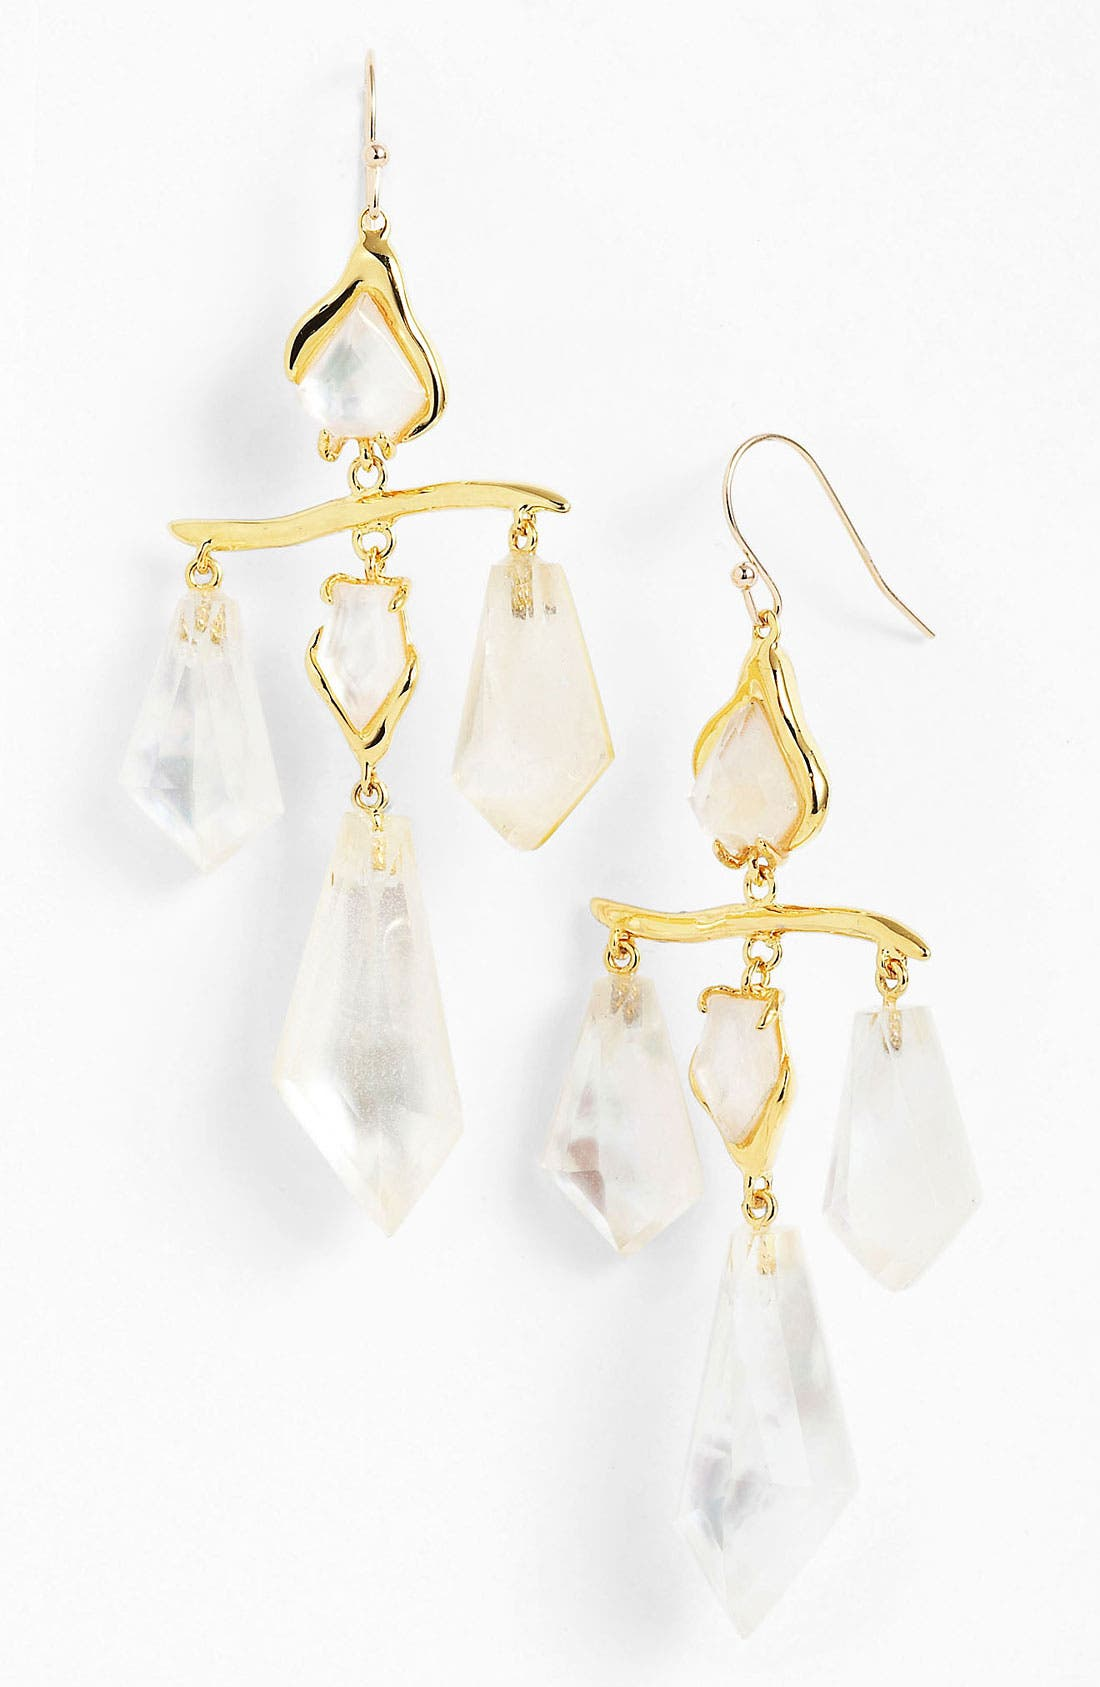 Main Image - Alexis Bittar 'Miss Havisham - Bel Air' Chandelier Earrings